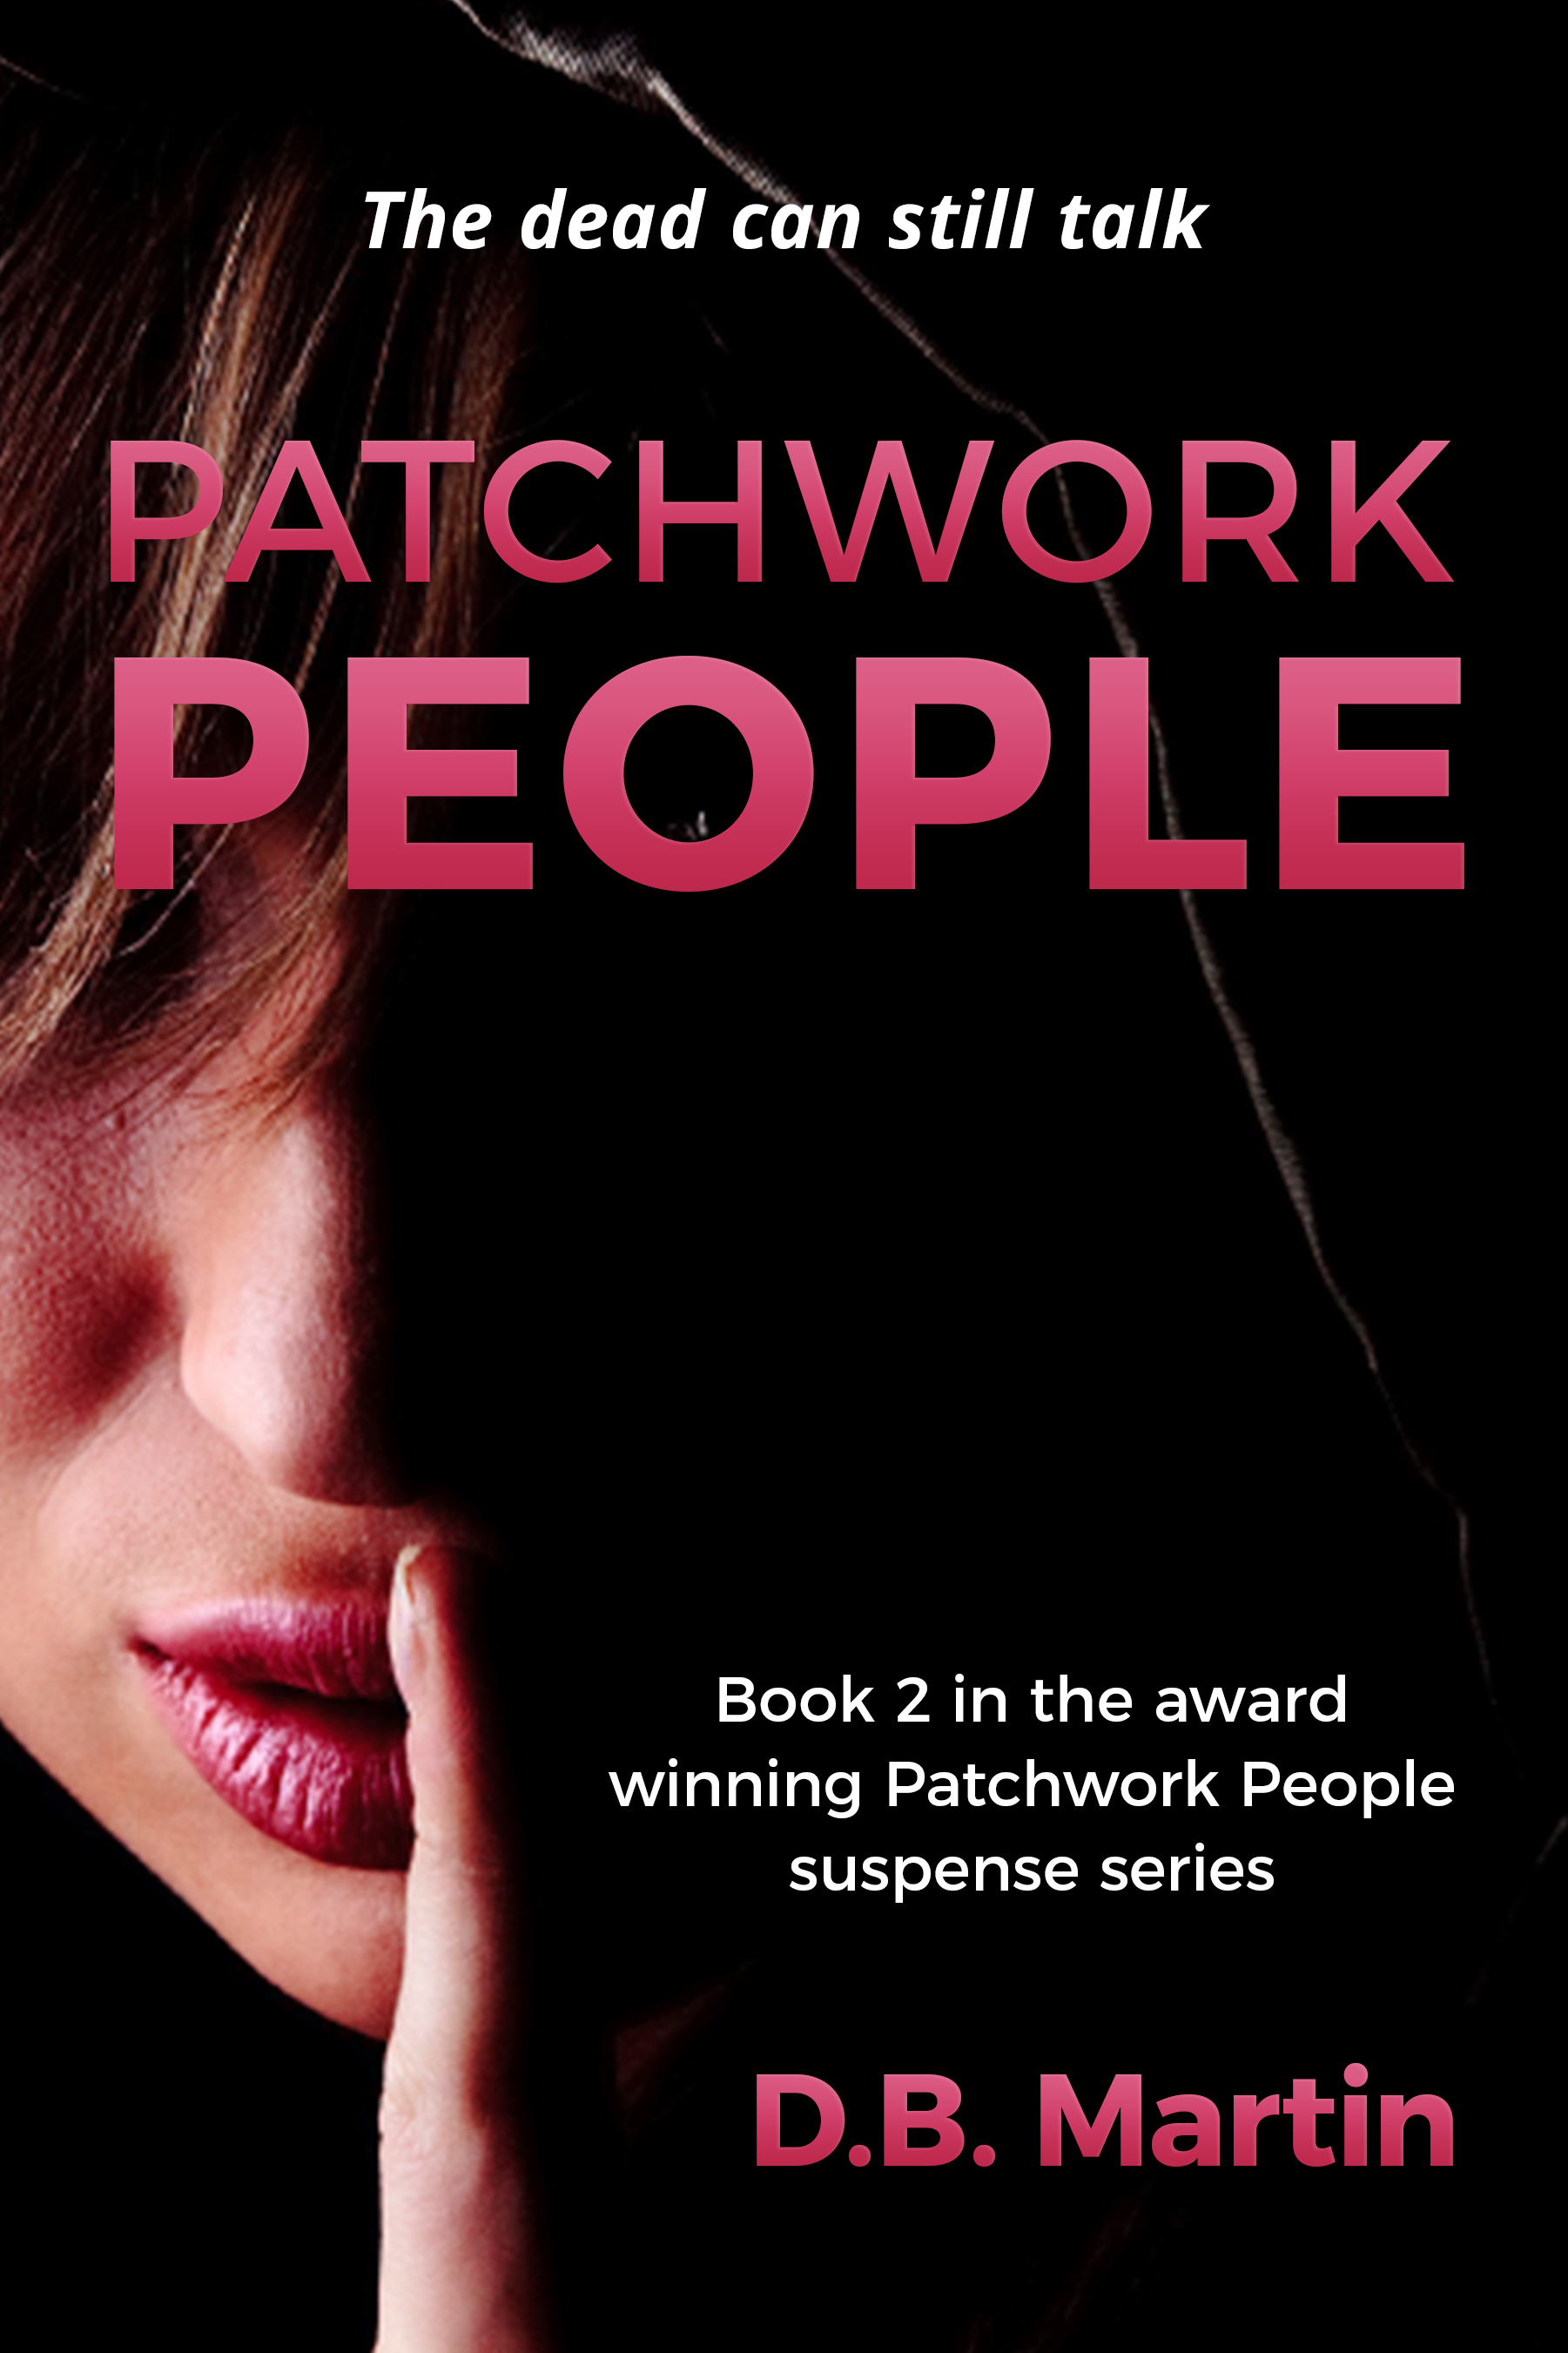 Patchwork People (Patchwork People series Book 2)